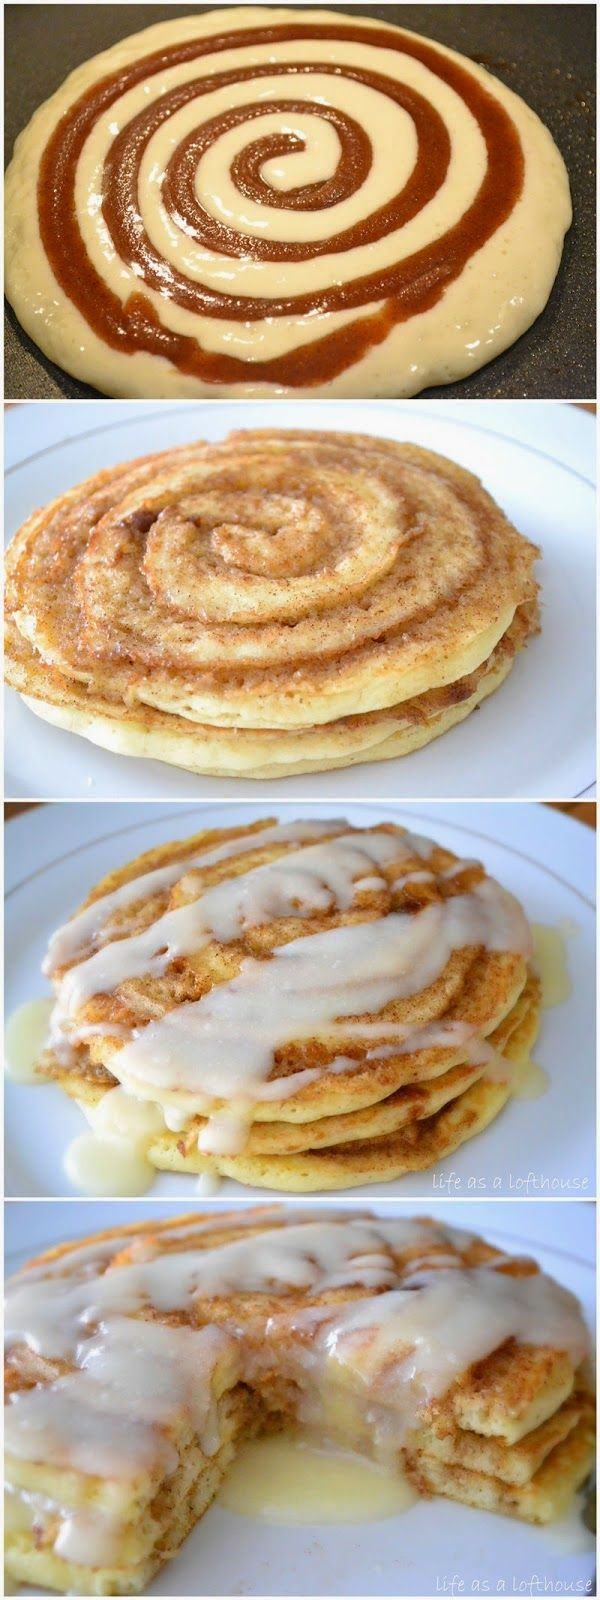 Ingredients For Pancakes: 1 cup all-purpose flour 2 teaspoons baking powder 1/2 teaspoon salt 1 cup milk 1 Tablespoon canola oil 1...